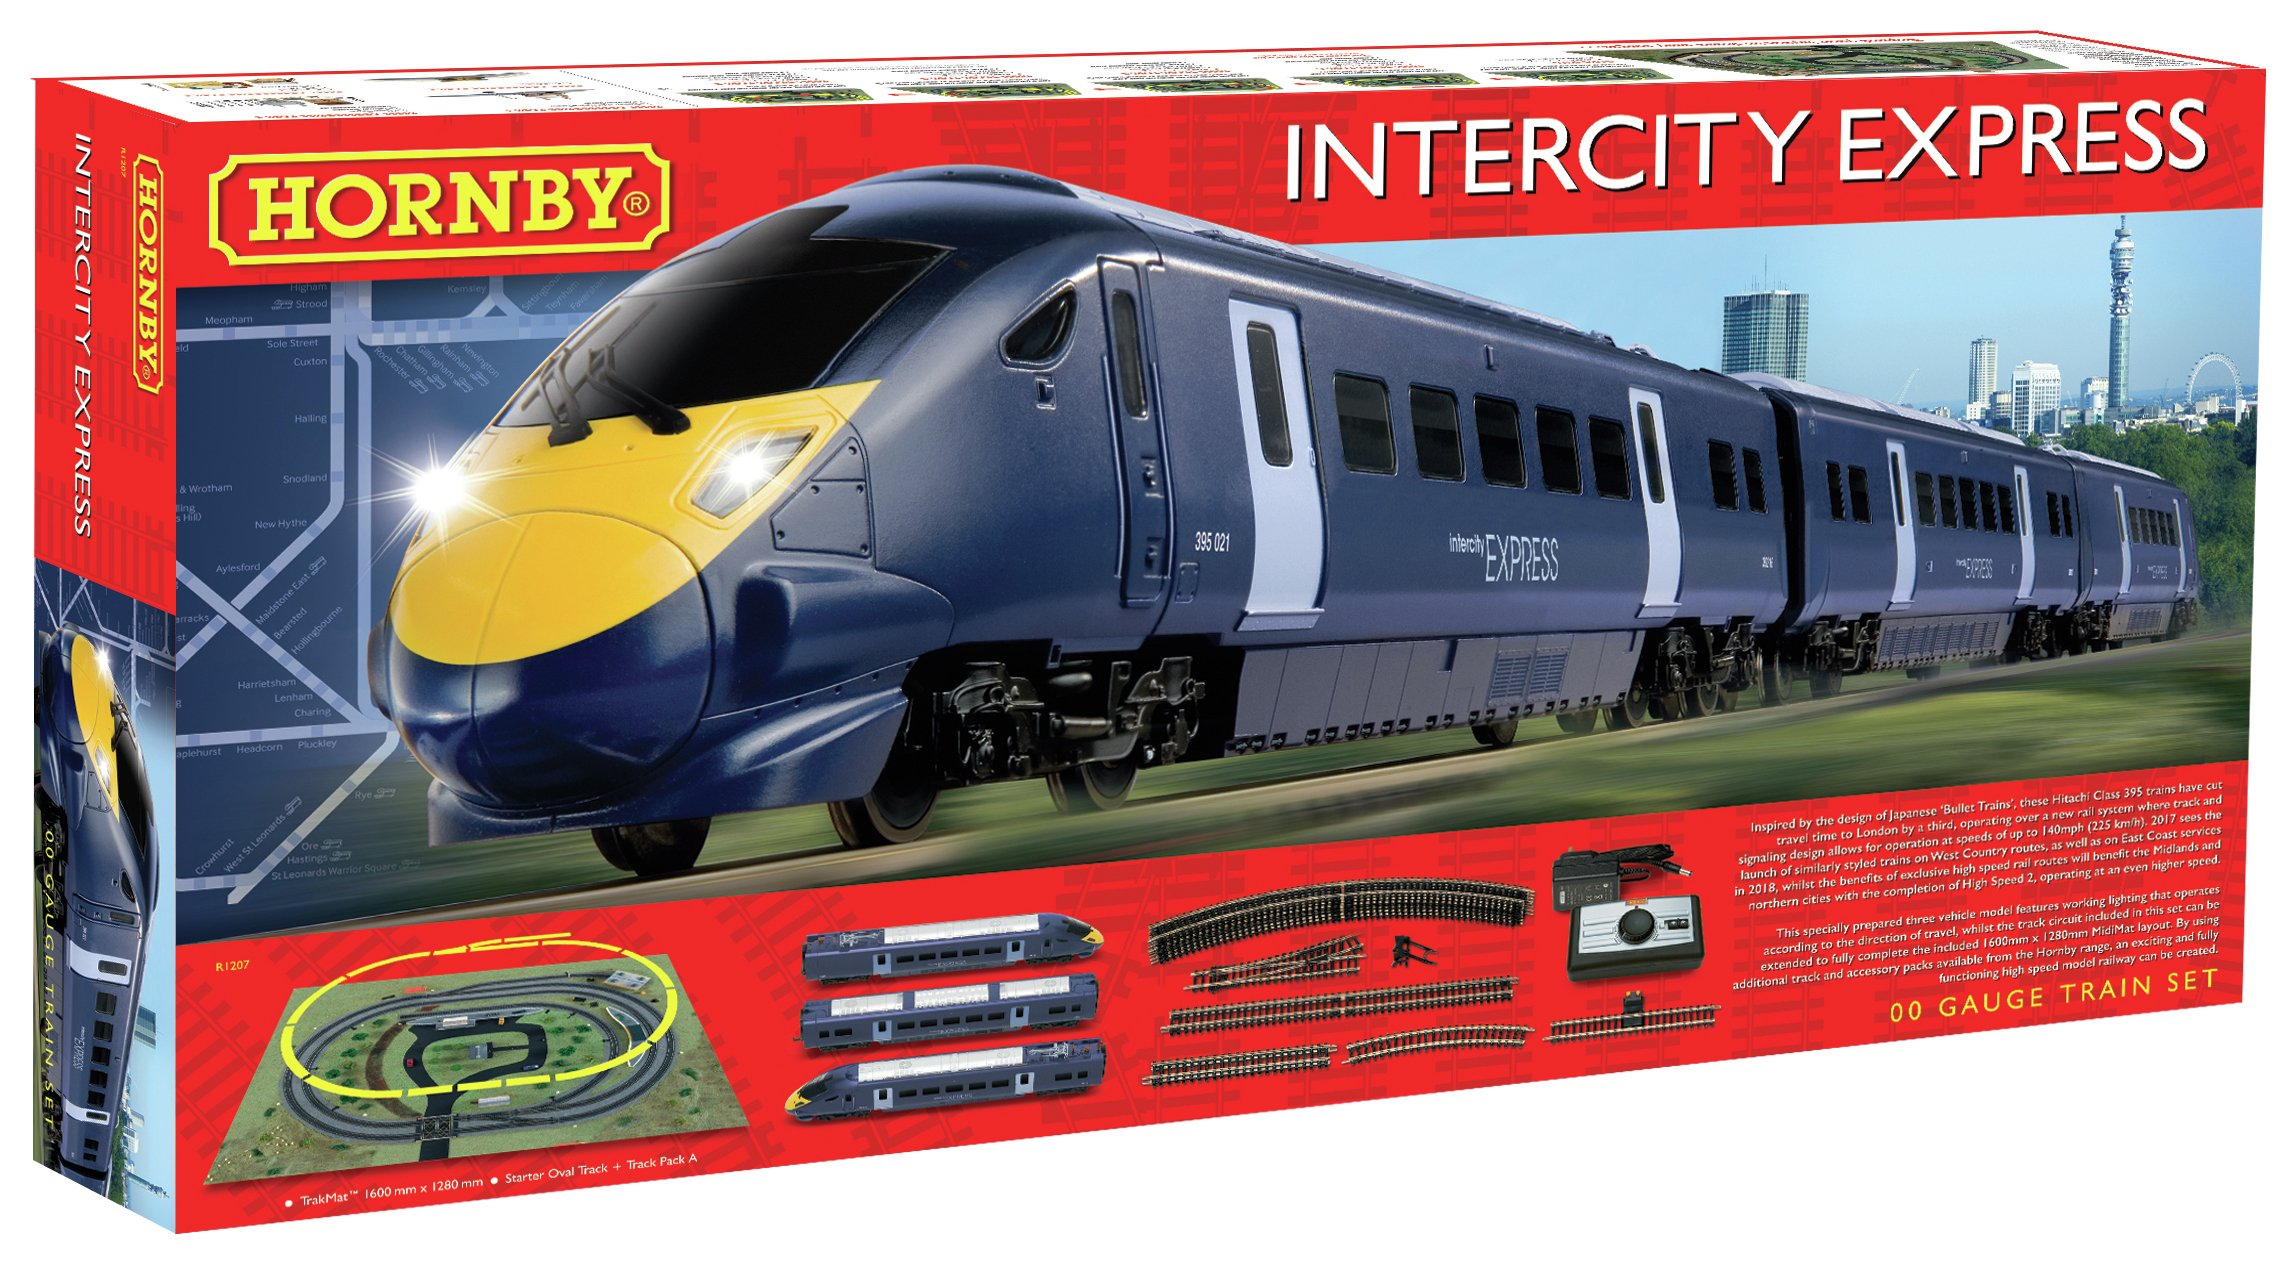 Image of Hornby Intercity Express